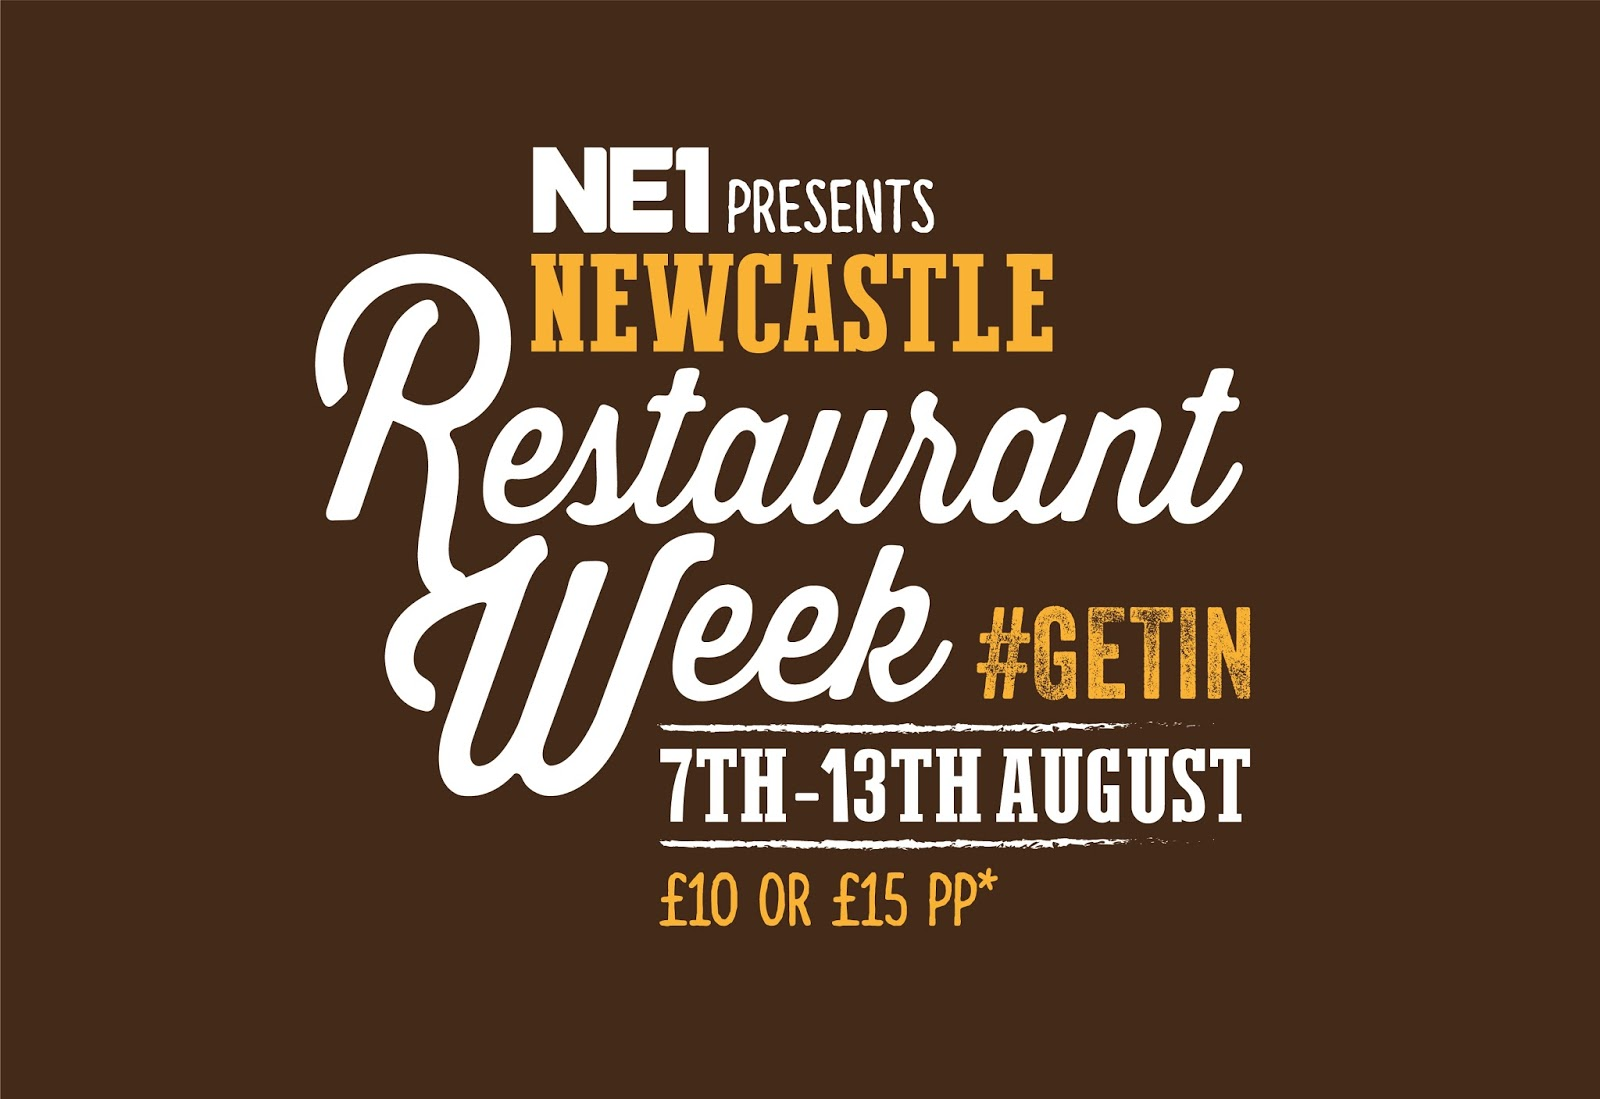 Guide to Newcastle Restaurant Week - August 2017